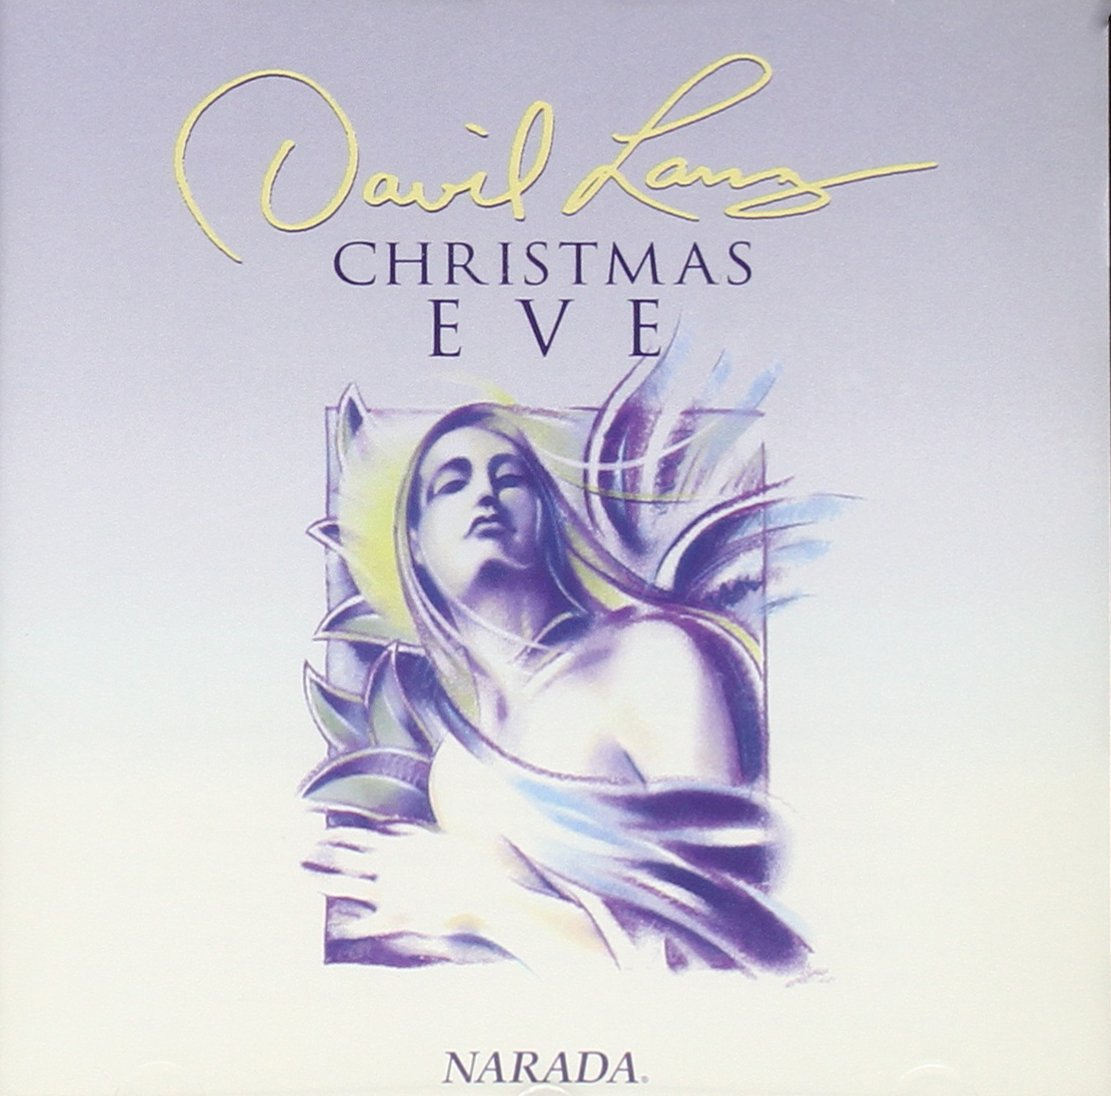 David Lanz - Christmas Eve - Amazon.com Music